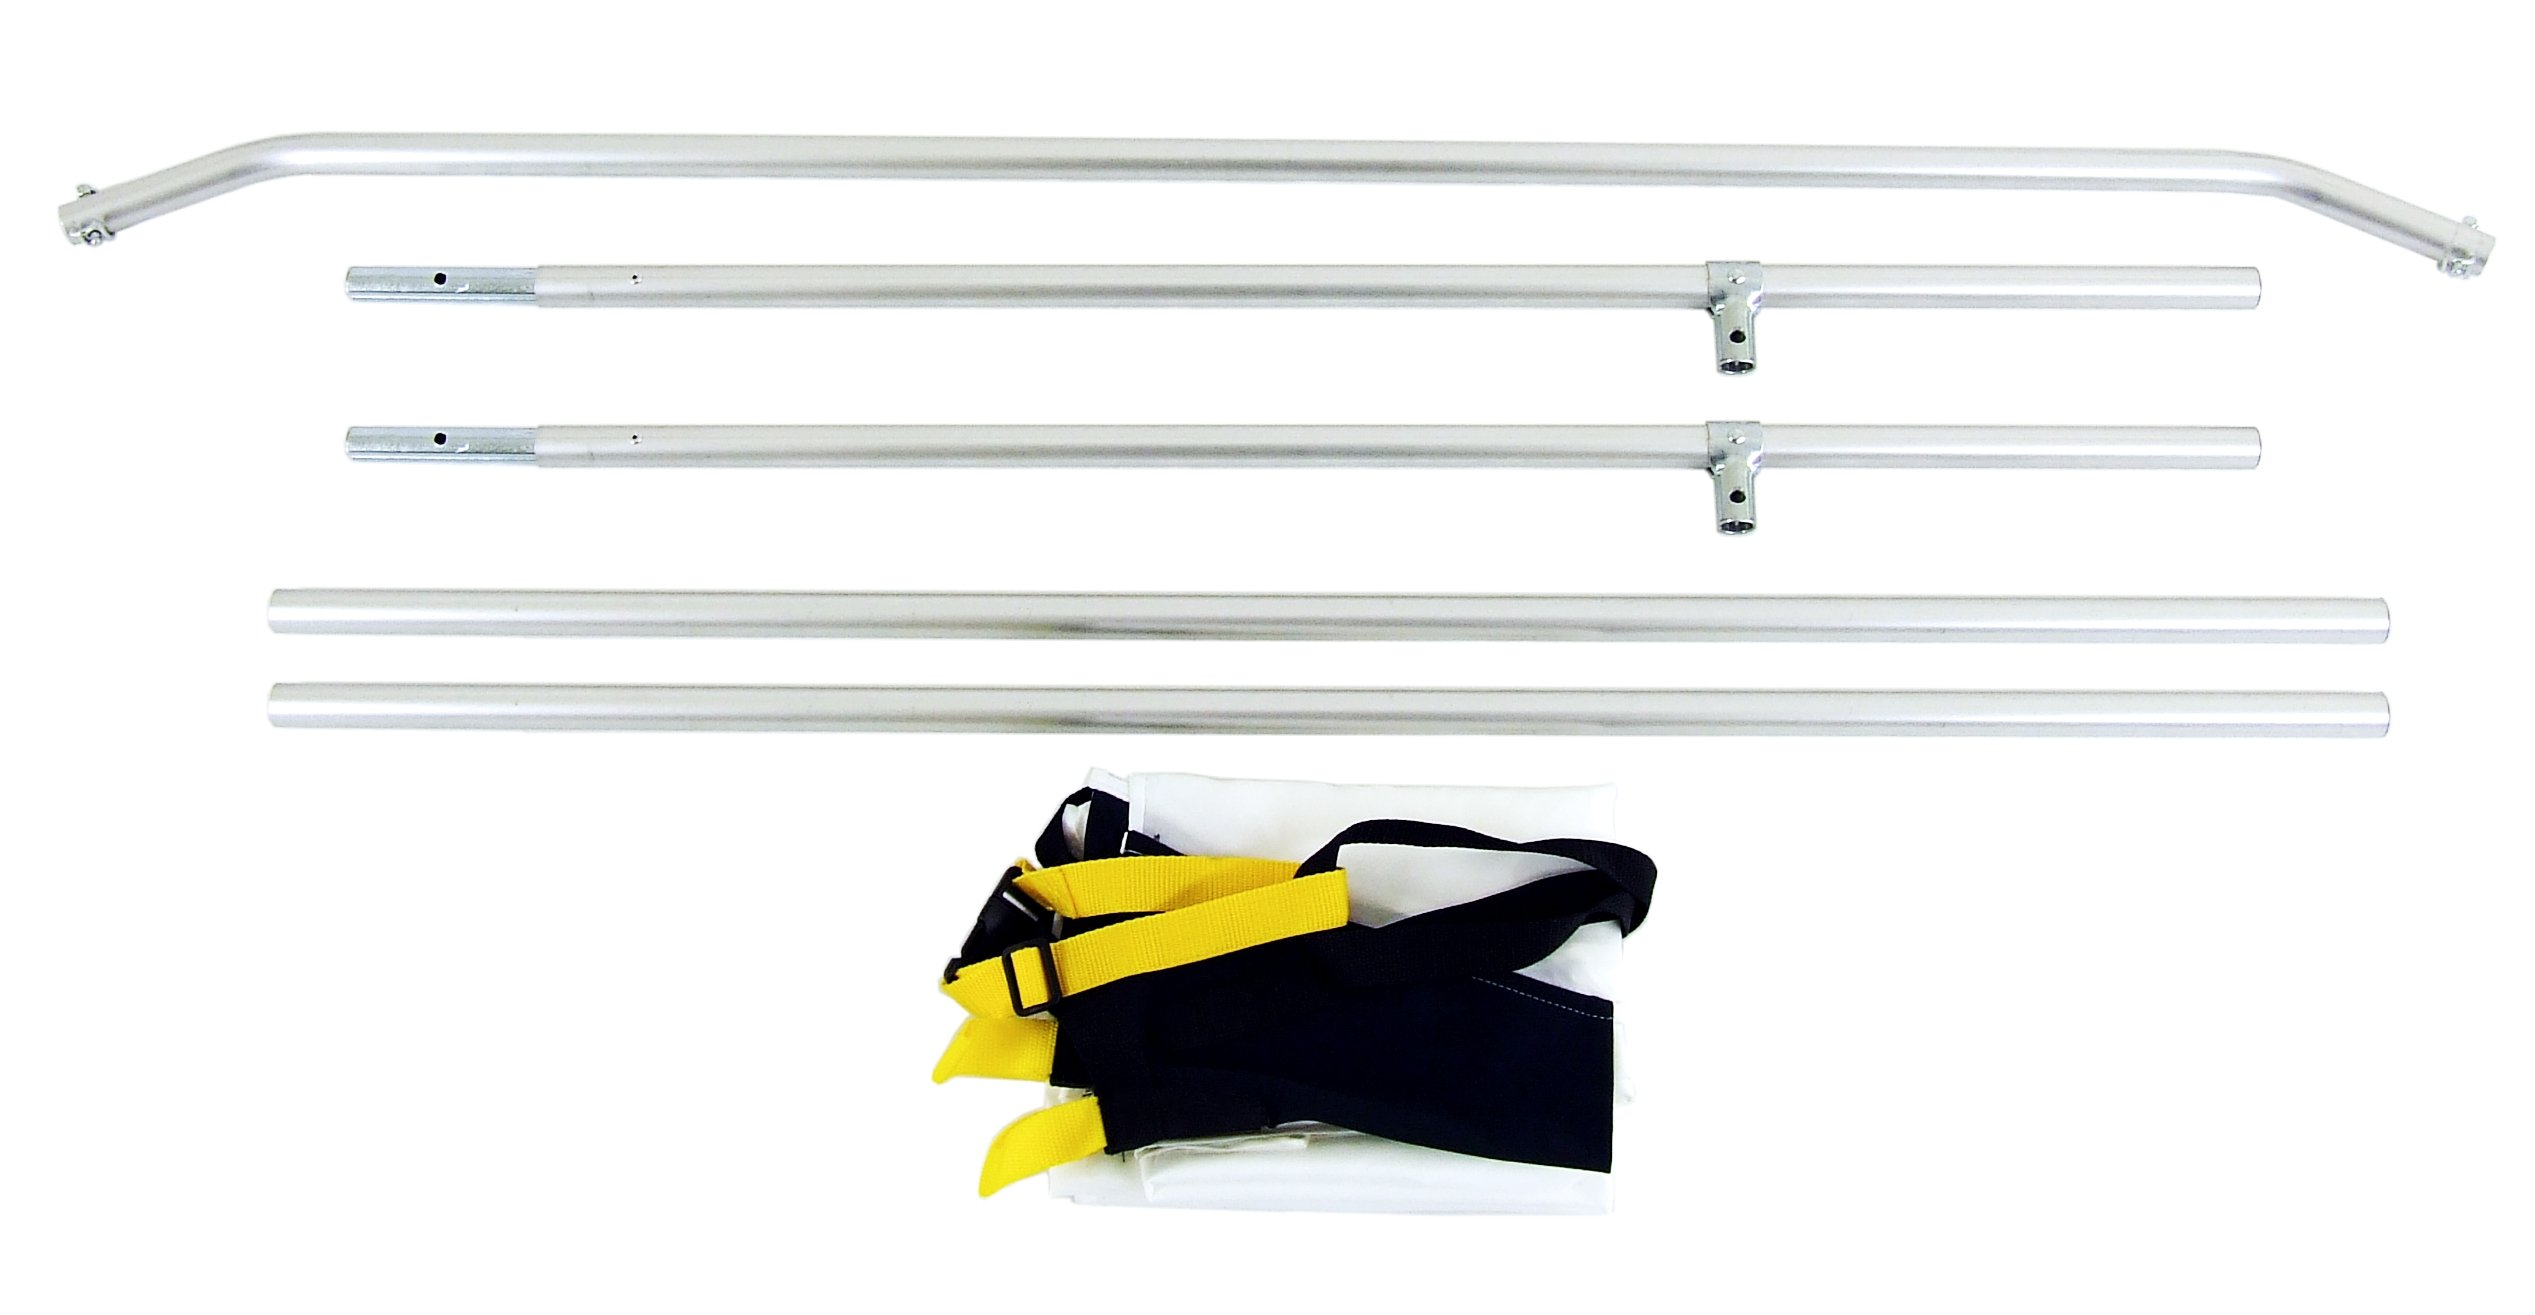 California Sun Swatter Pro (4 x 6 Feet) Super Saver Starter Kit - 2/3 Stop Overhead Diffusion Kit with Frame and Carry Bag